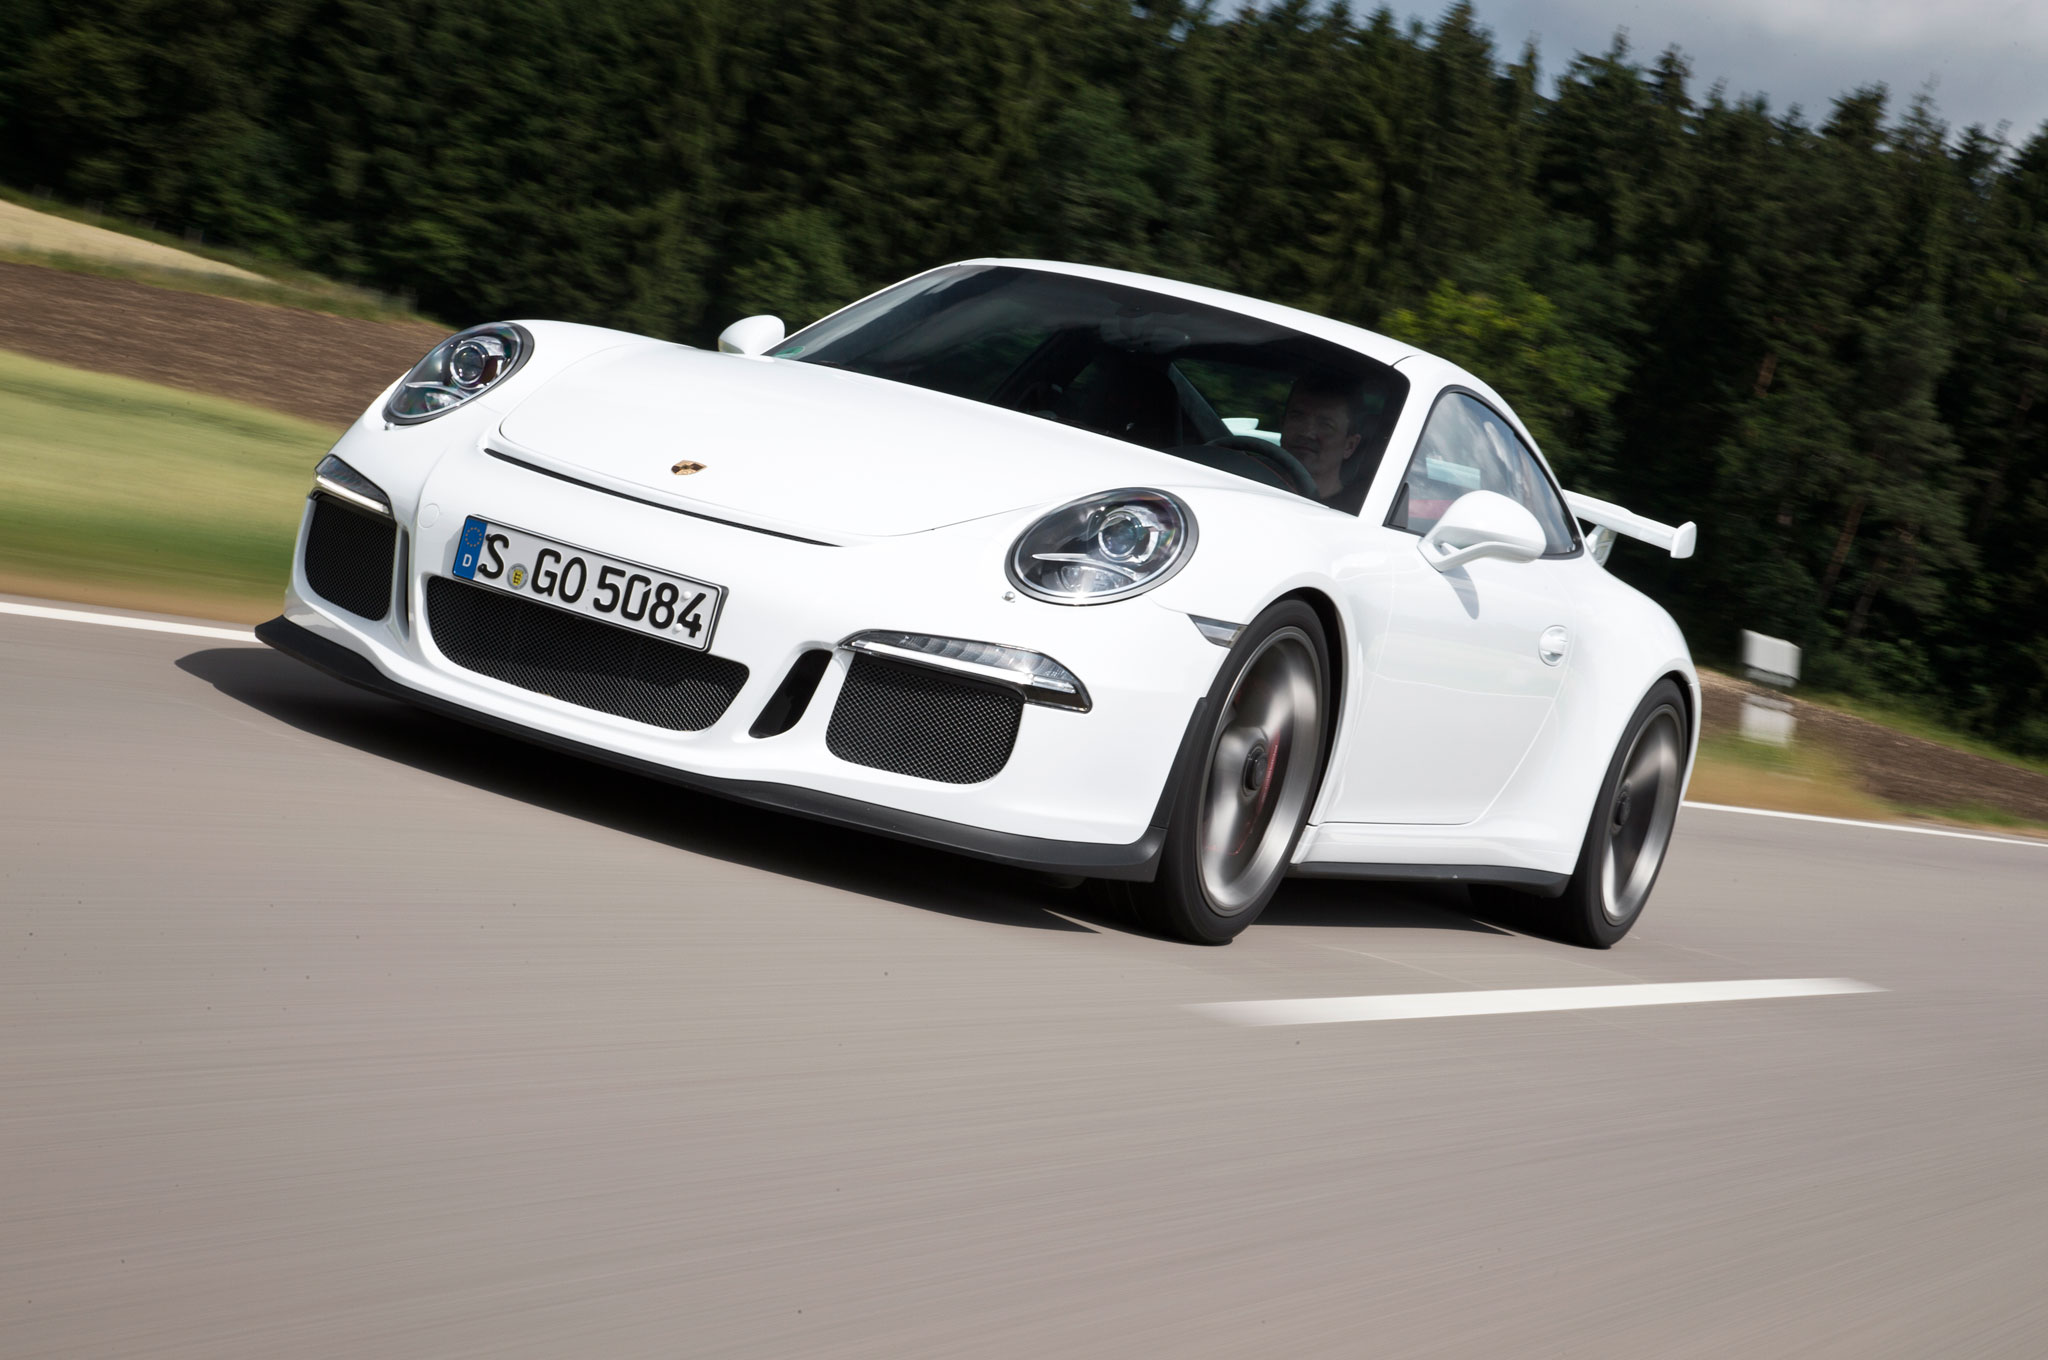 Porsche to Replace Engines in all Sold and Unsold 2014 911 GT3s